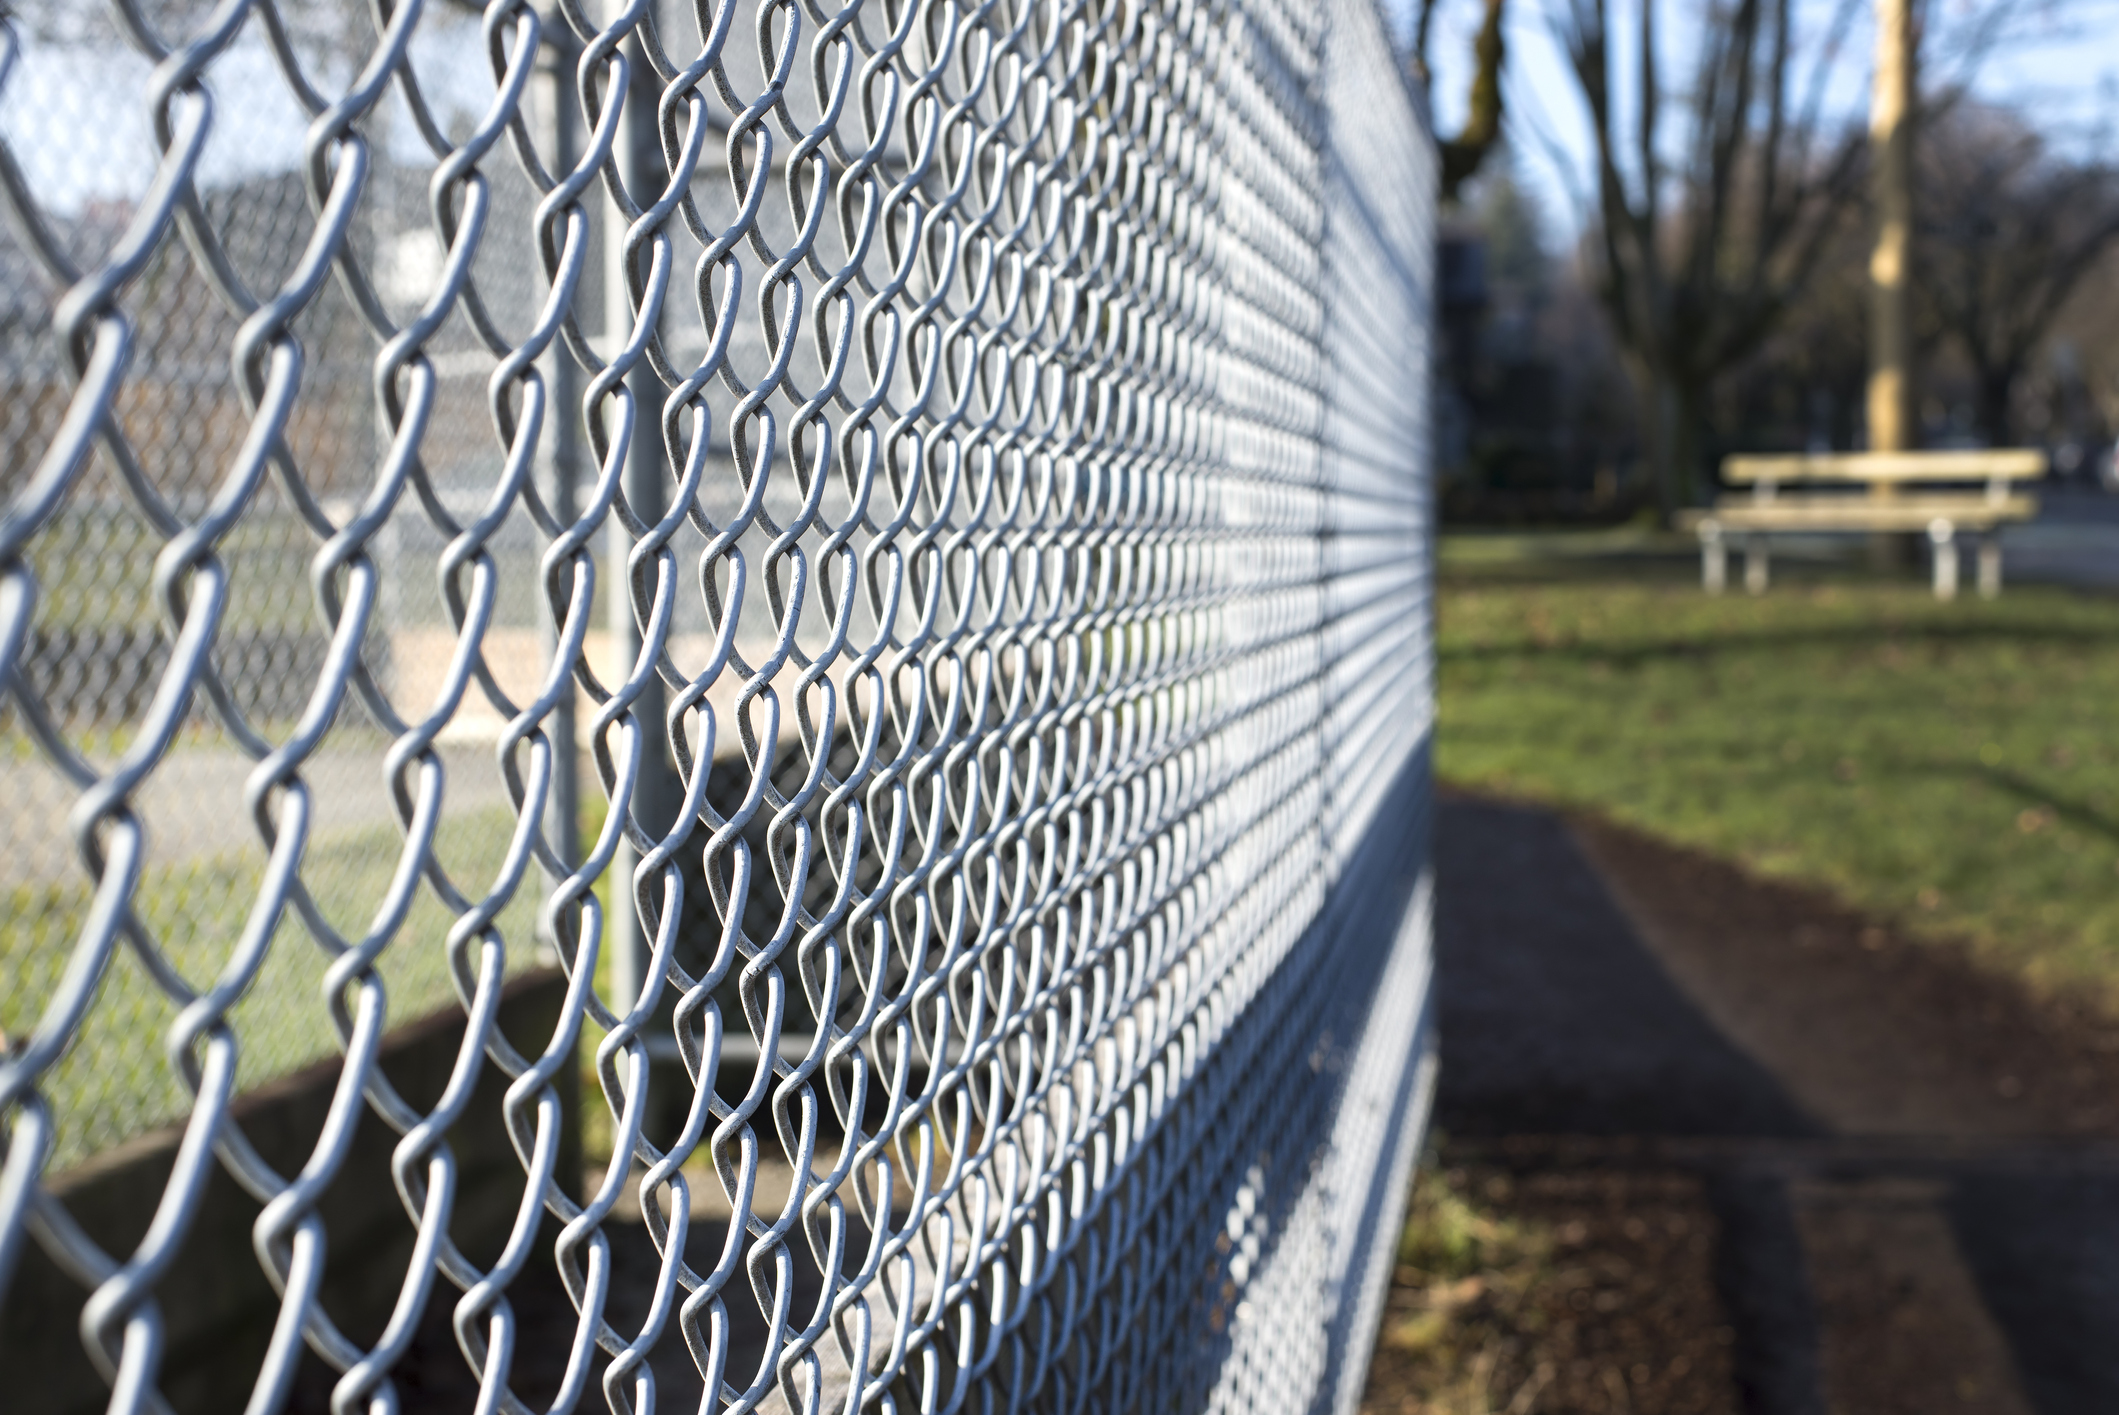 Chain Link Fence around Business